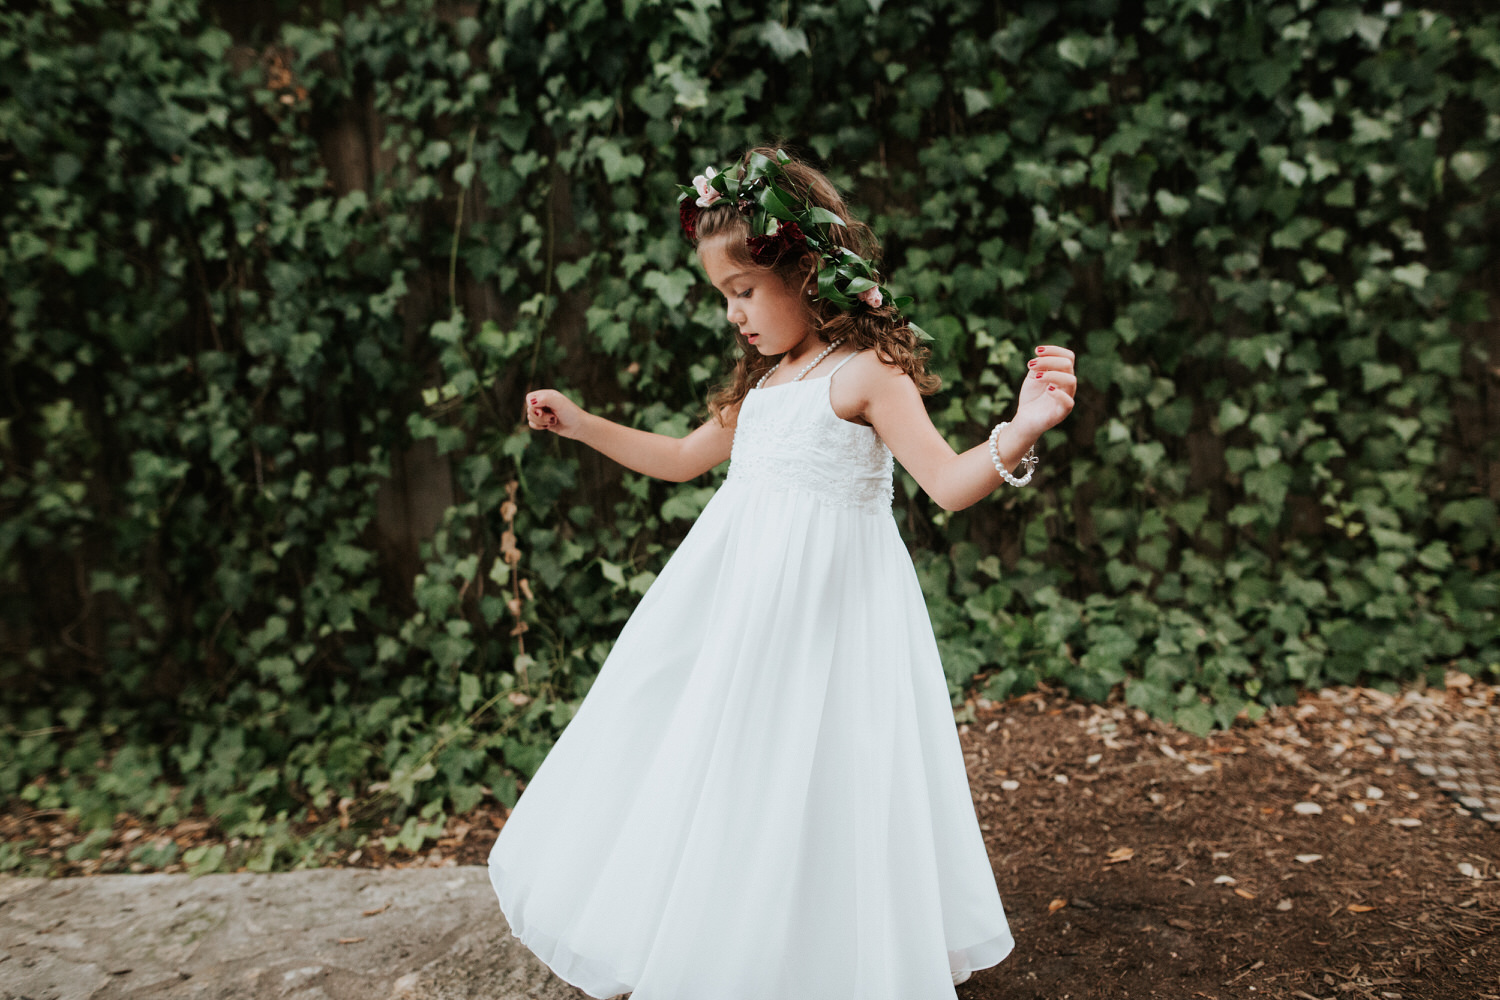 Little girl at The Sanctuary wedding